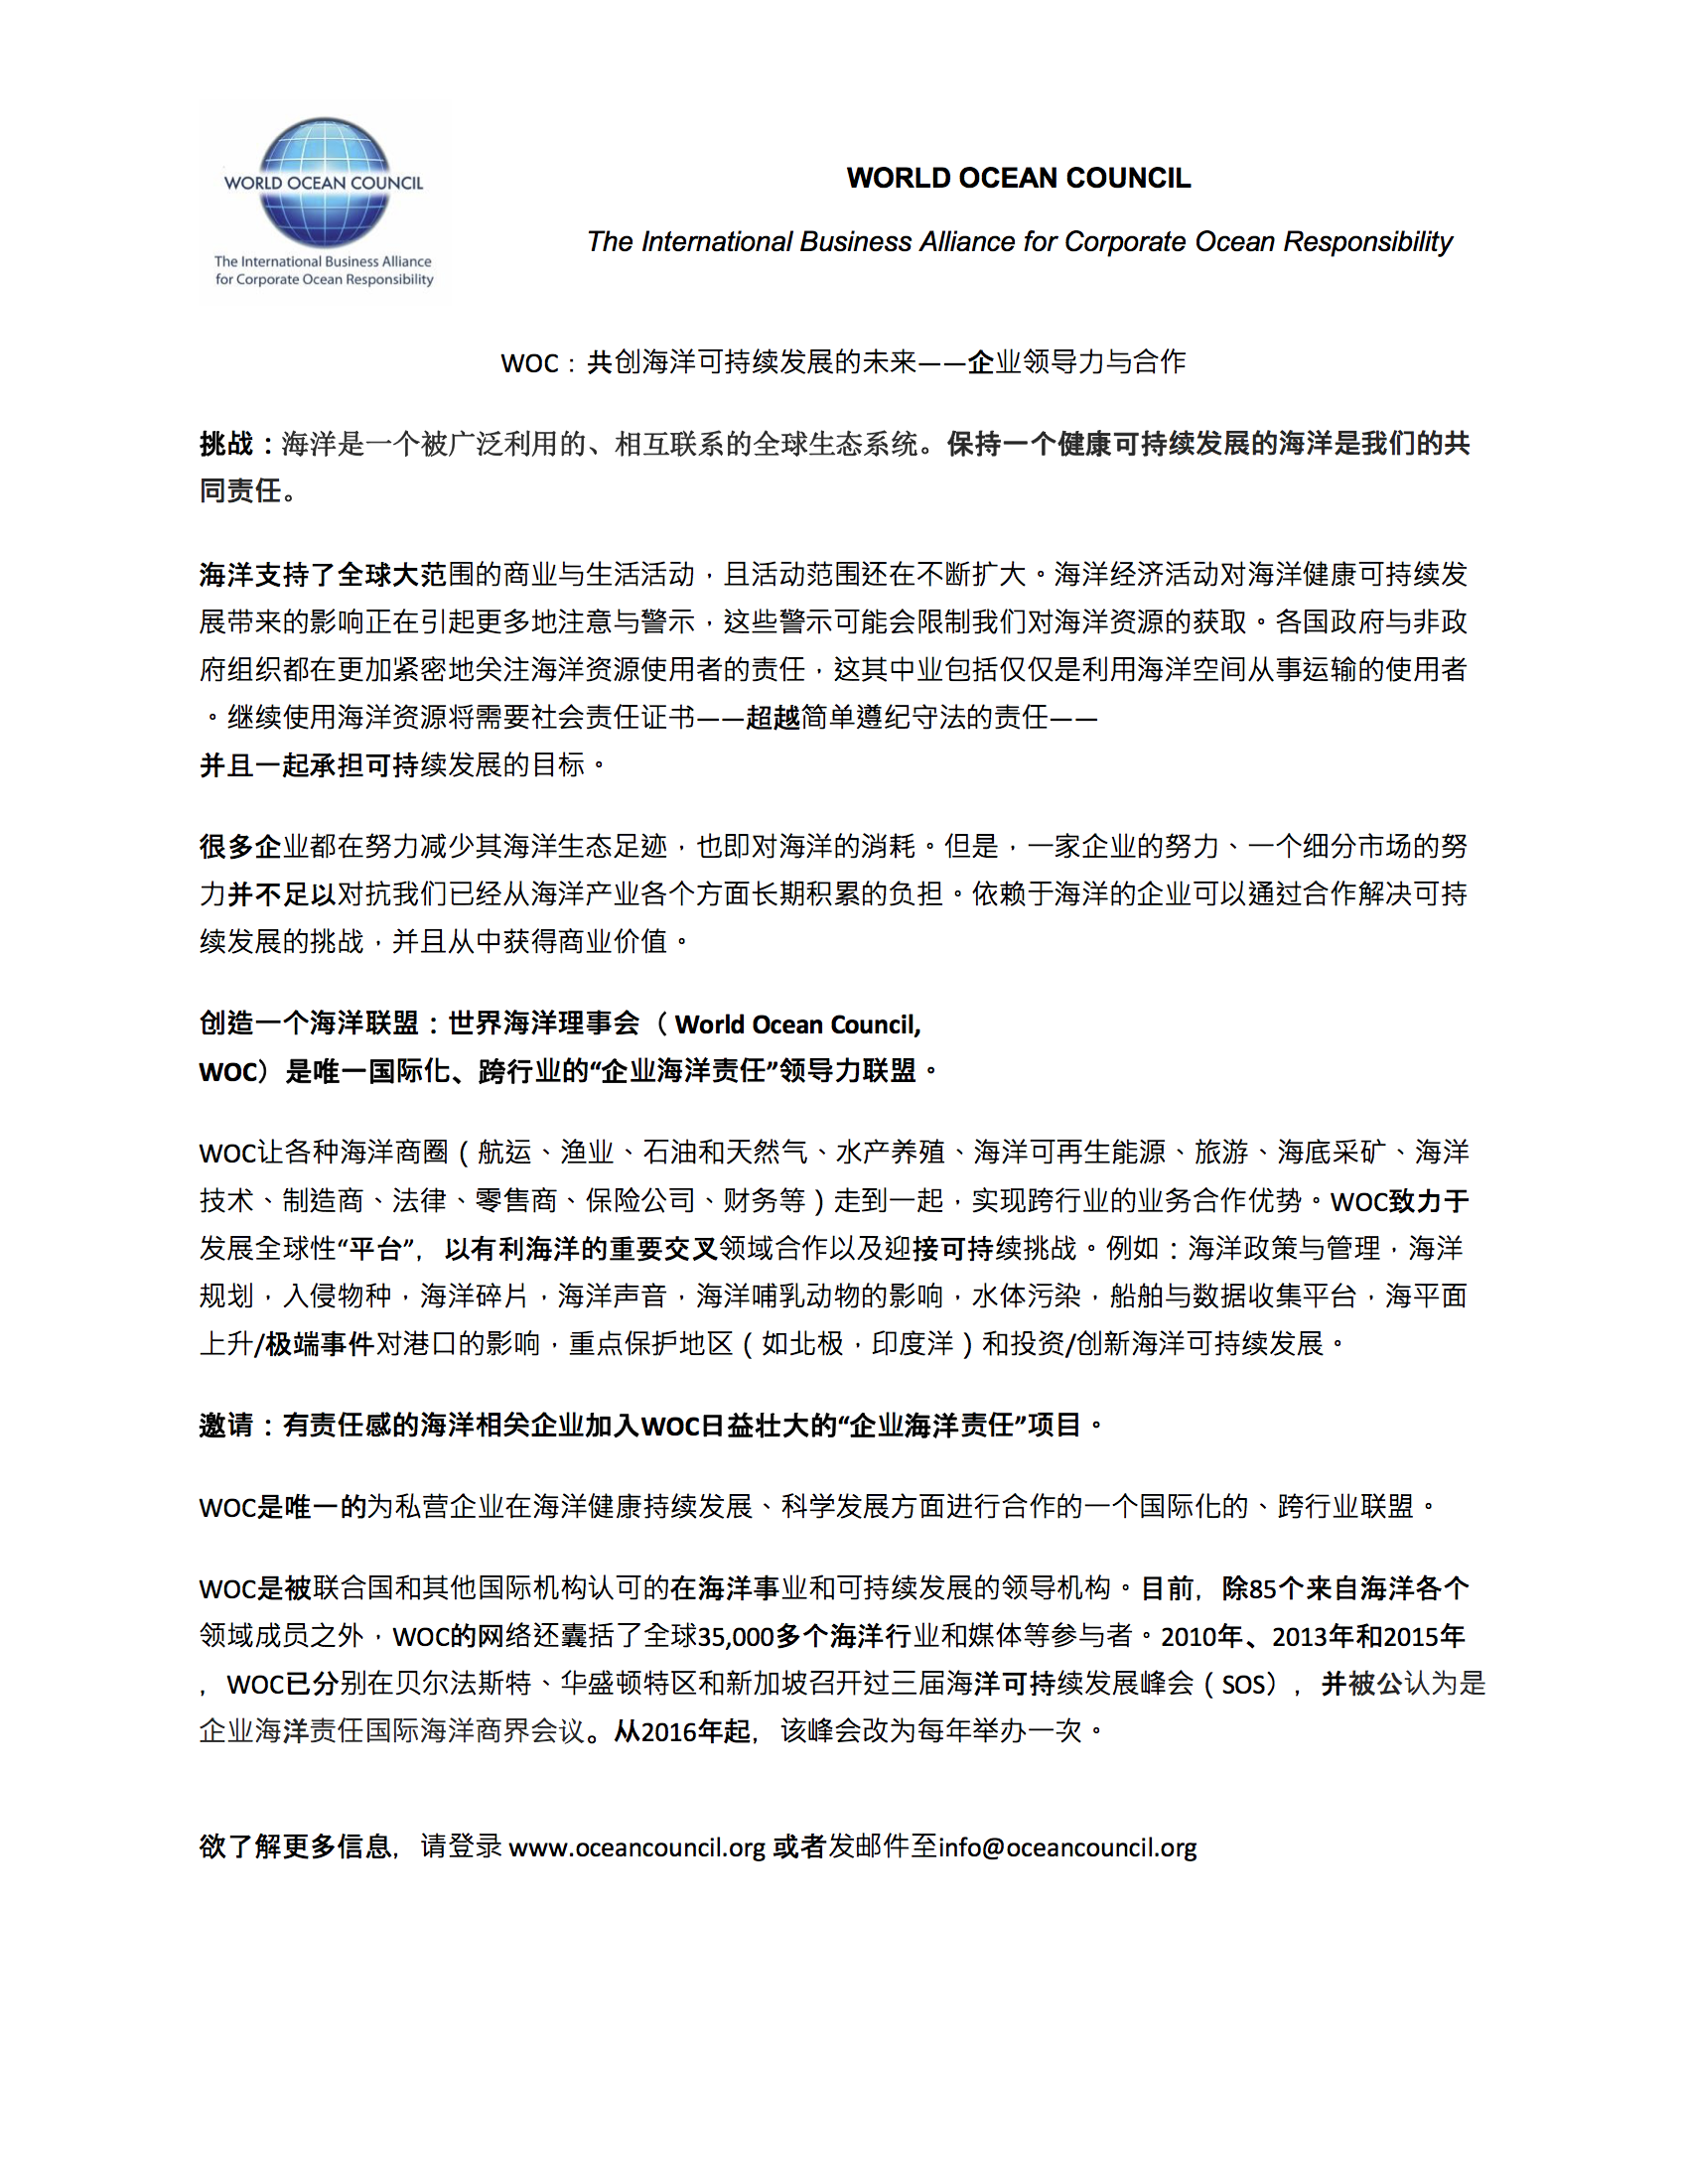 WOC in One Page, in Chinese